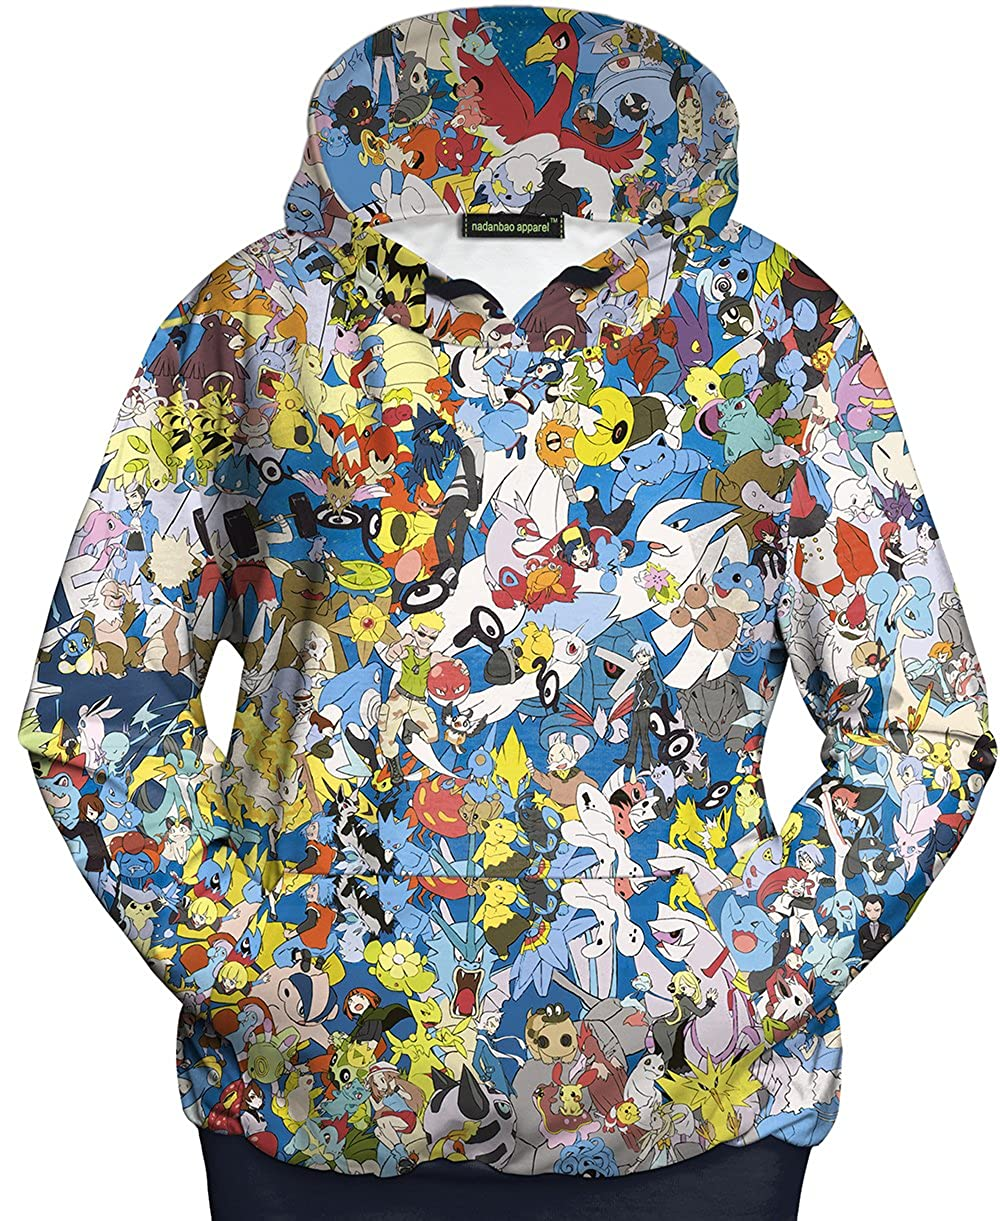 Charmley Unisex 3D Halloween Sweatshirt Cute Pokemon Cartoon Printing Pullover Hoodies